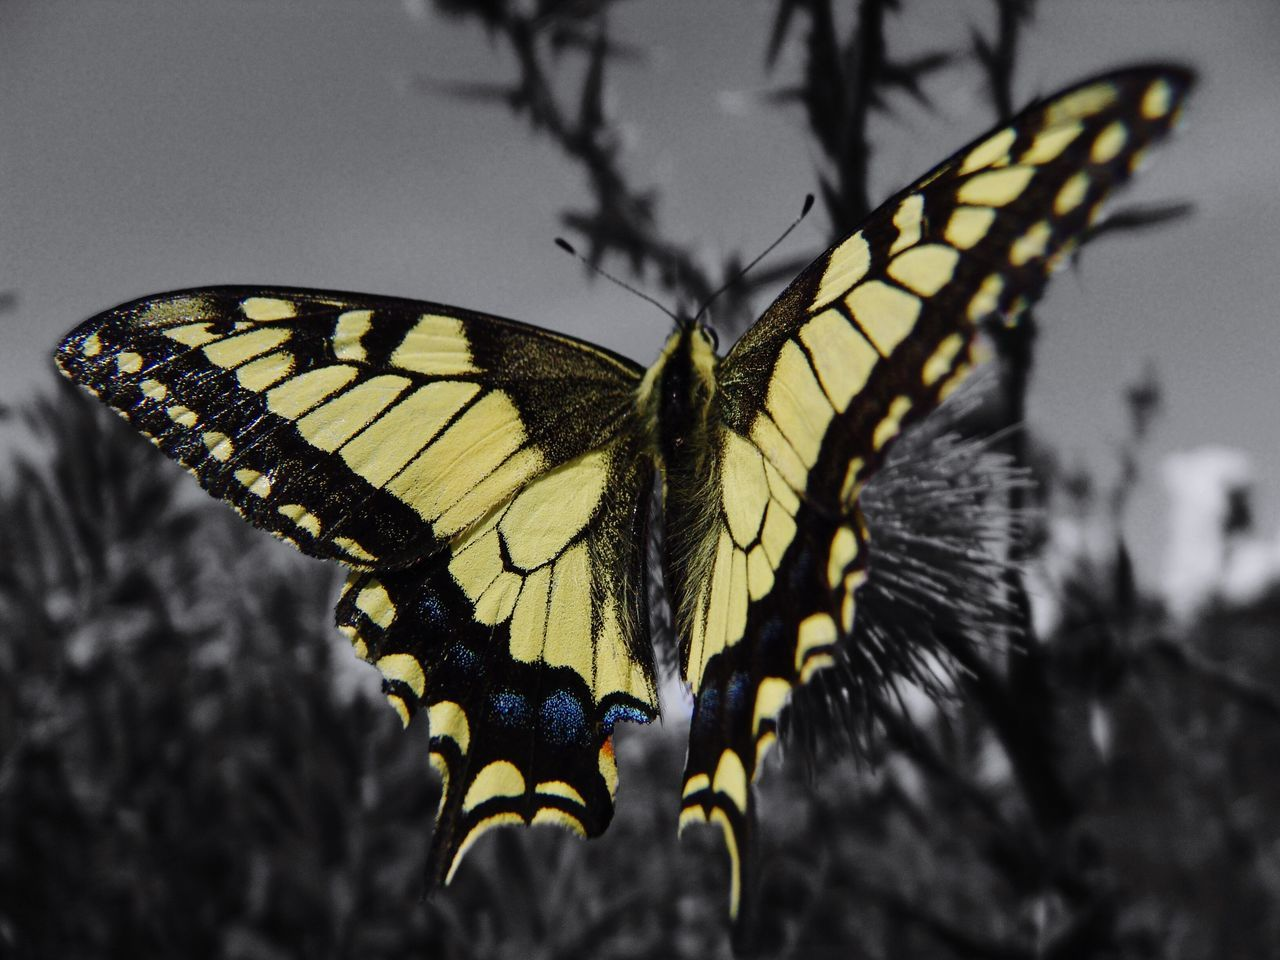 insect, animal themes, butterfly - insect, animals in the wild, animal wing, one animal, butterfly, animal wildlife, close-up, no people, nature, focus on foreground, animal markings, spread wings, outdoors, full length, perching, beauty in nature, day, freshness